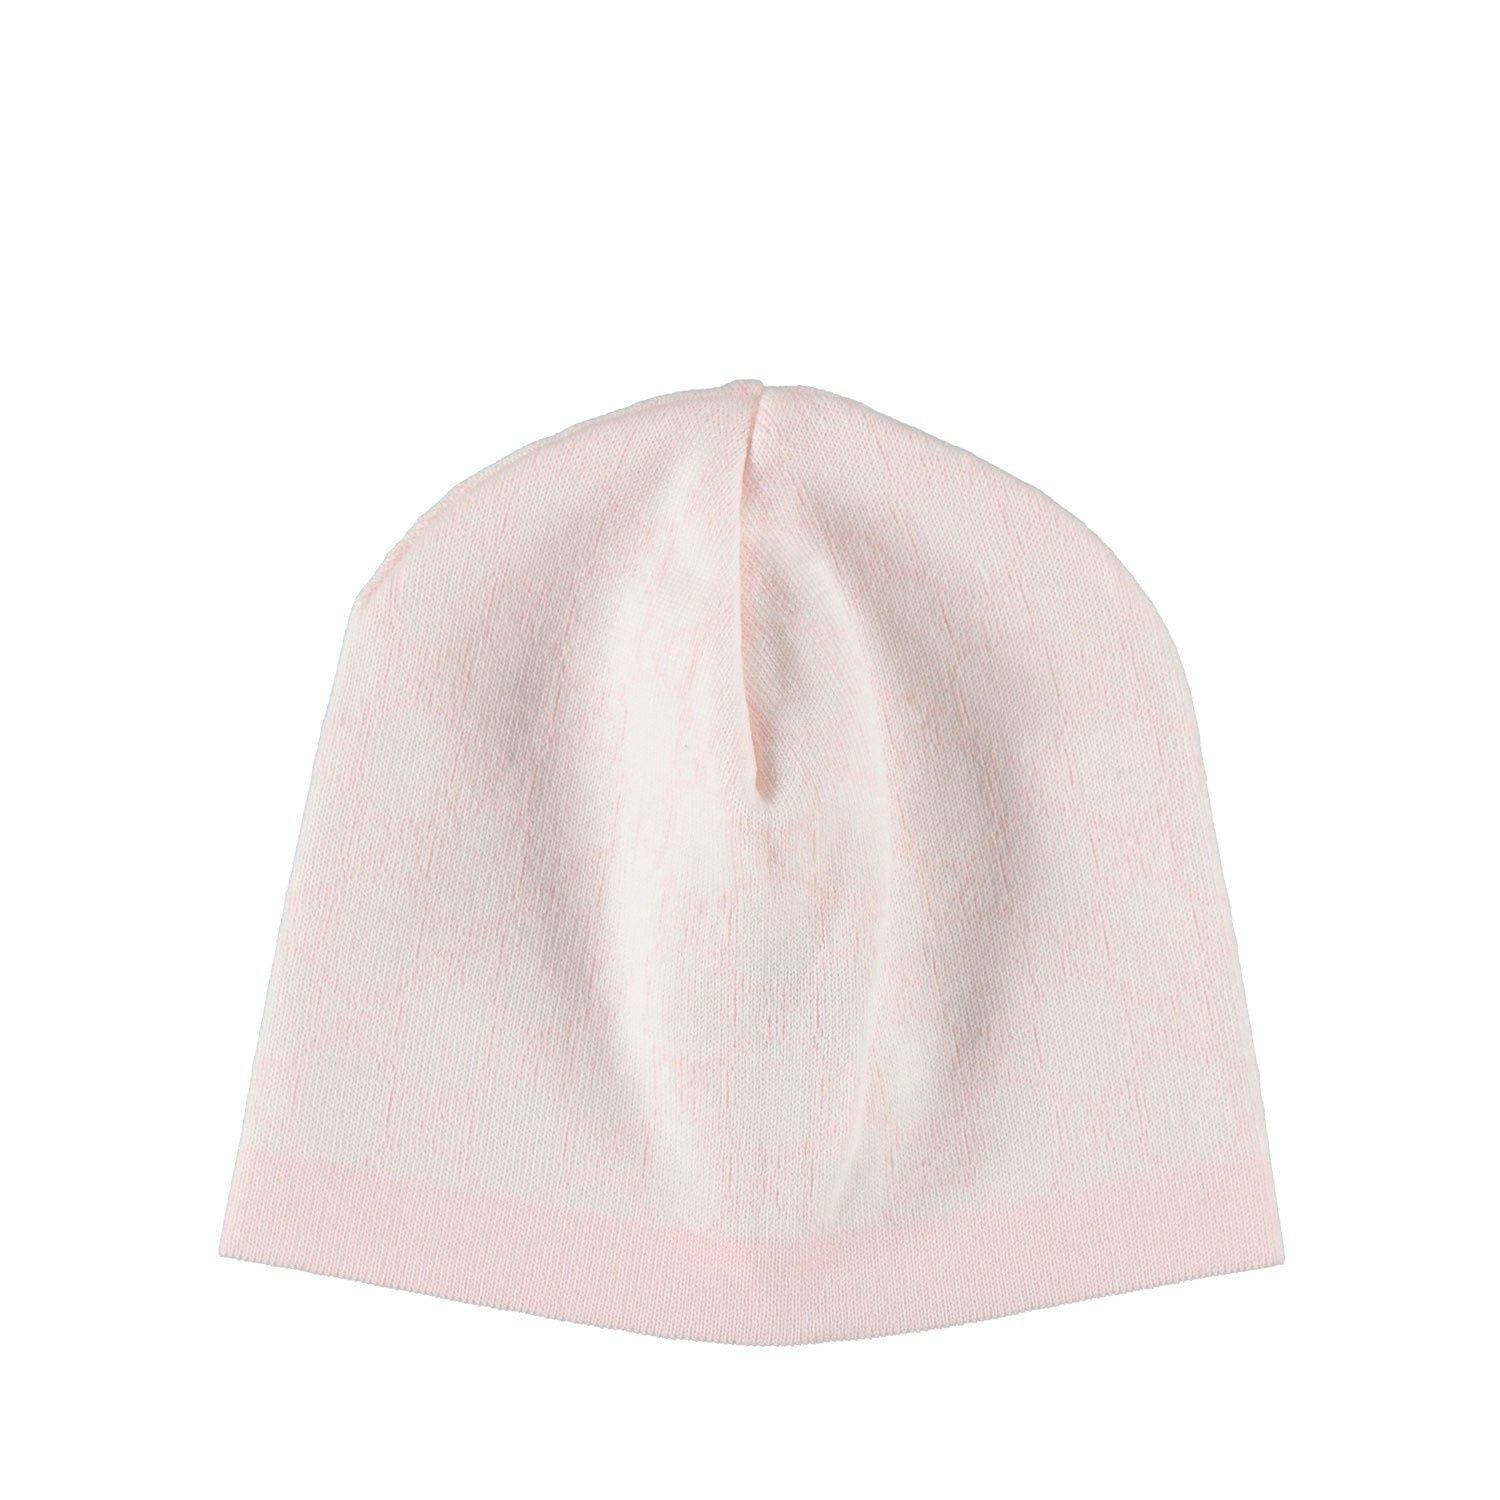 Picture of Gucci 418599 baby hat light pink